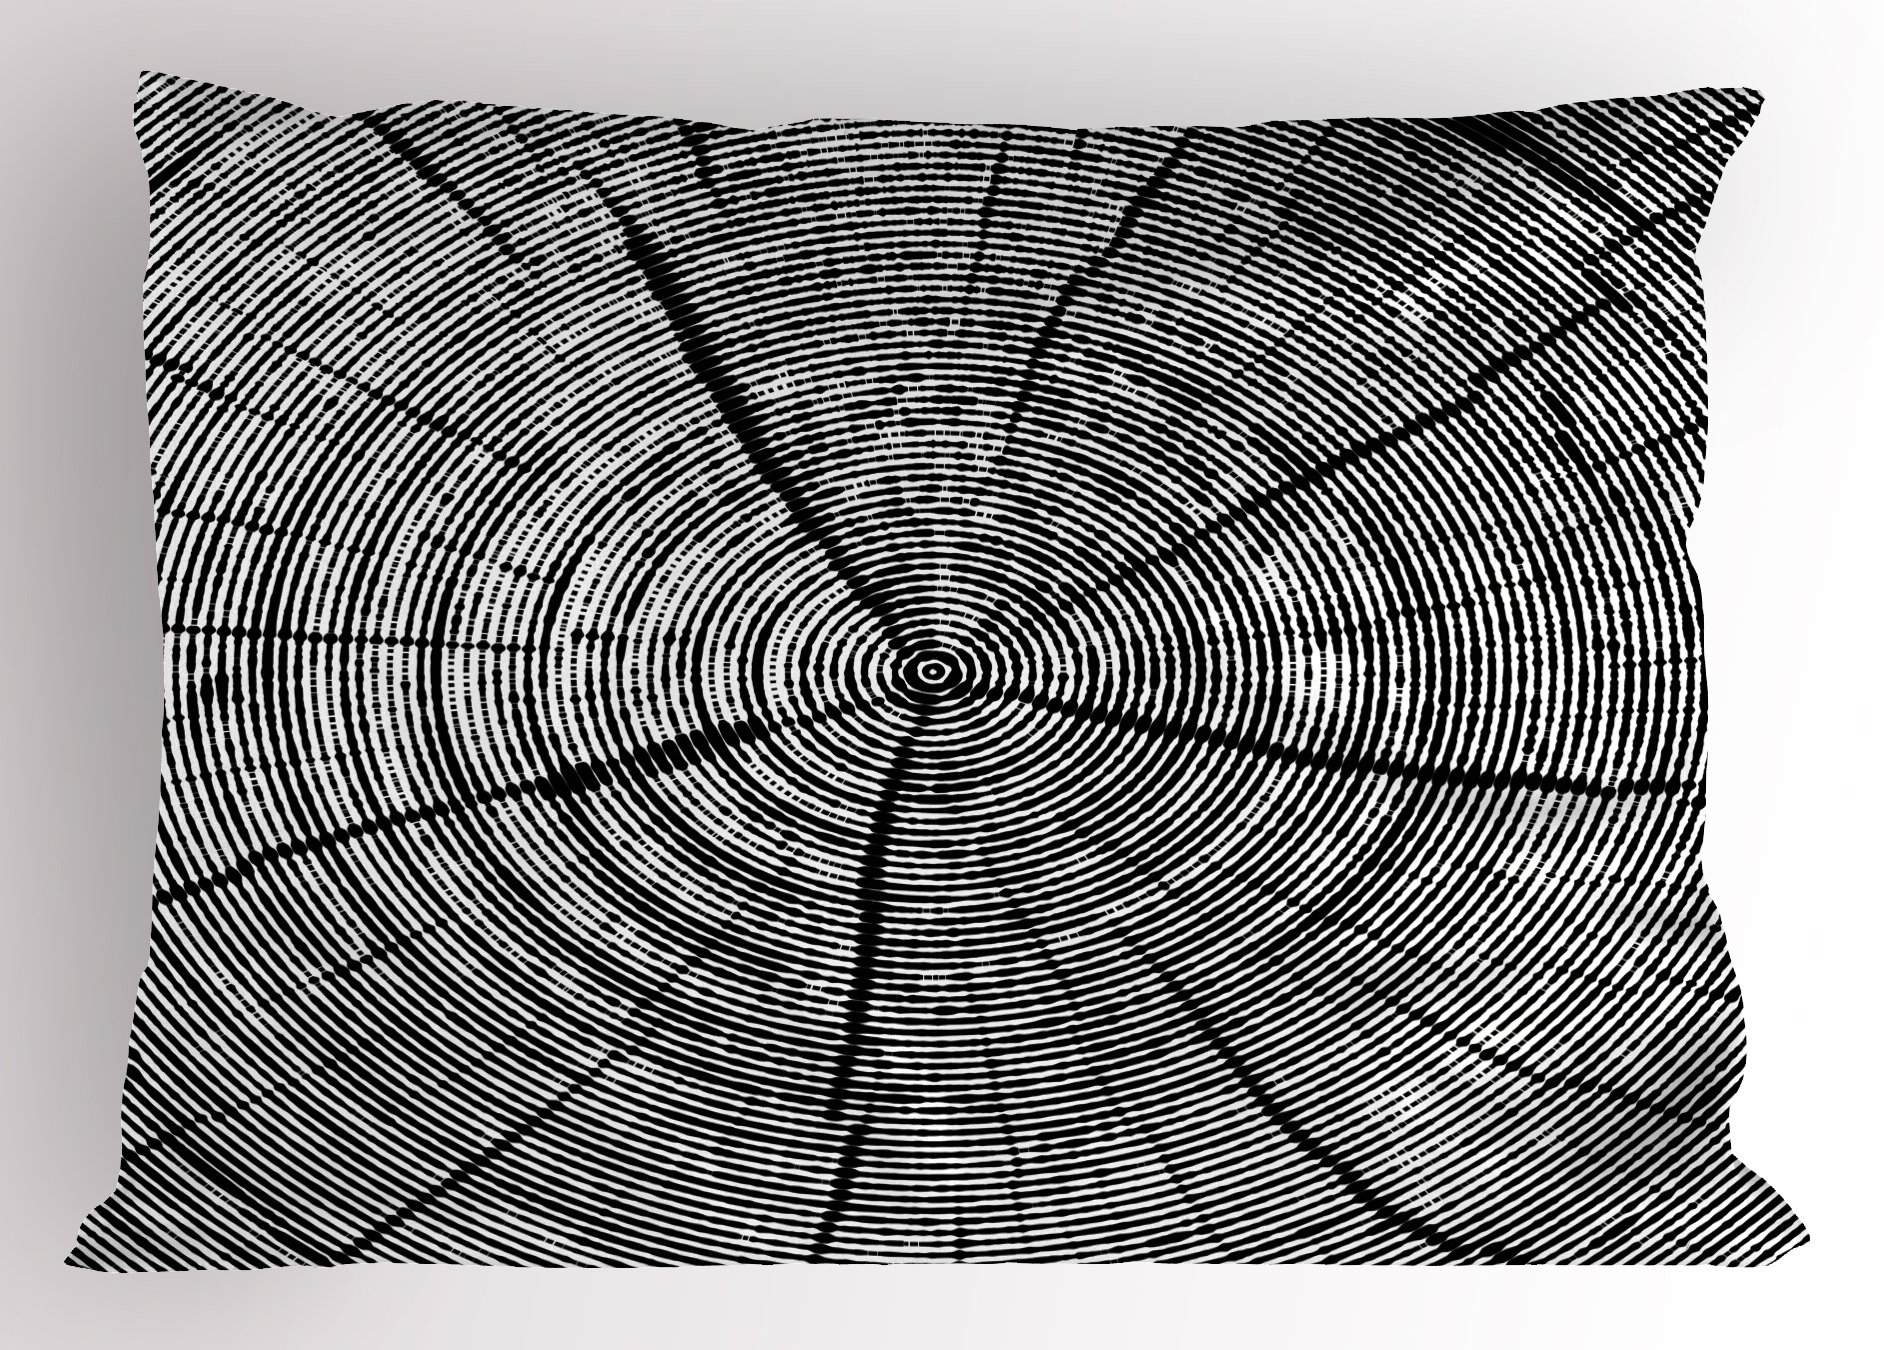 Lunarable Wood Print Pillow Sham, Sketch of a Tree Trunk with Age Rings Nature Inspired Monochrome Design, Decorative Standard King Size Printed Pillowcase, 36 X 20 inches, Black and White